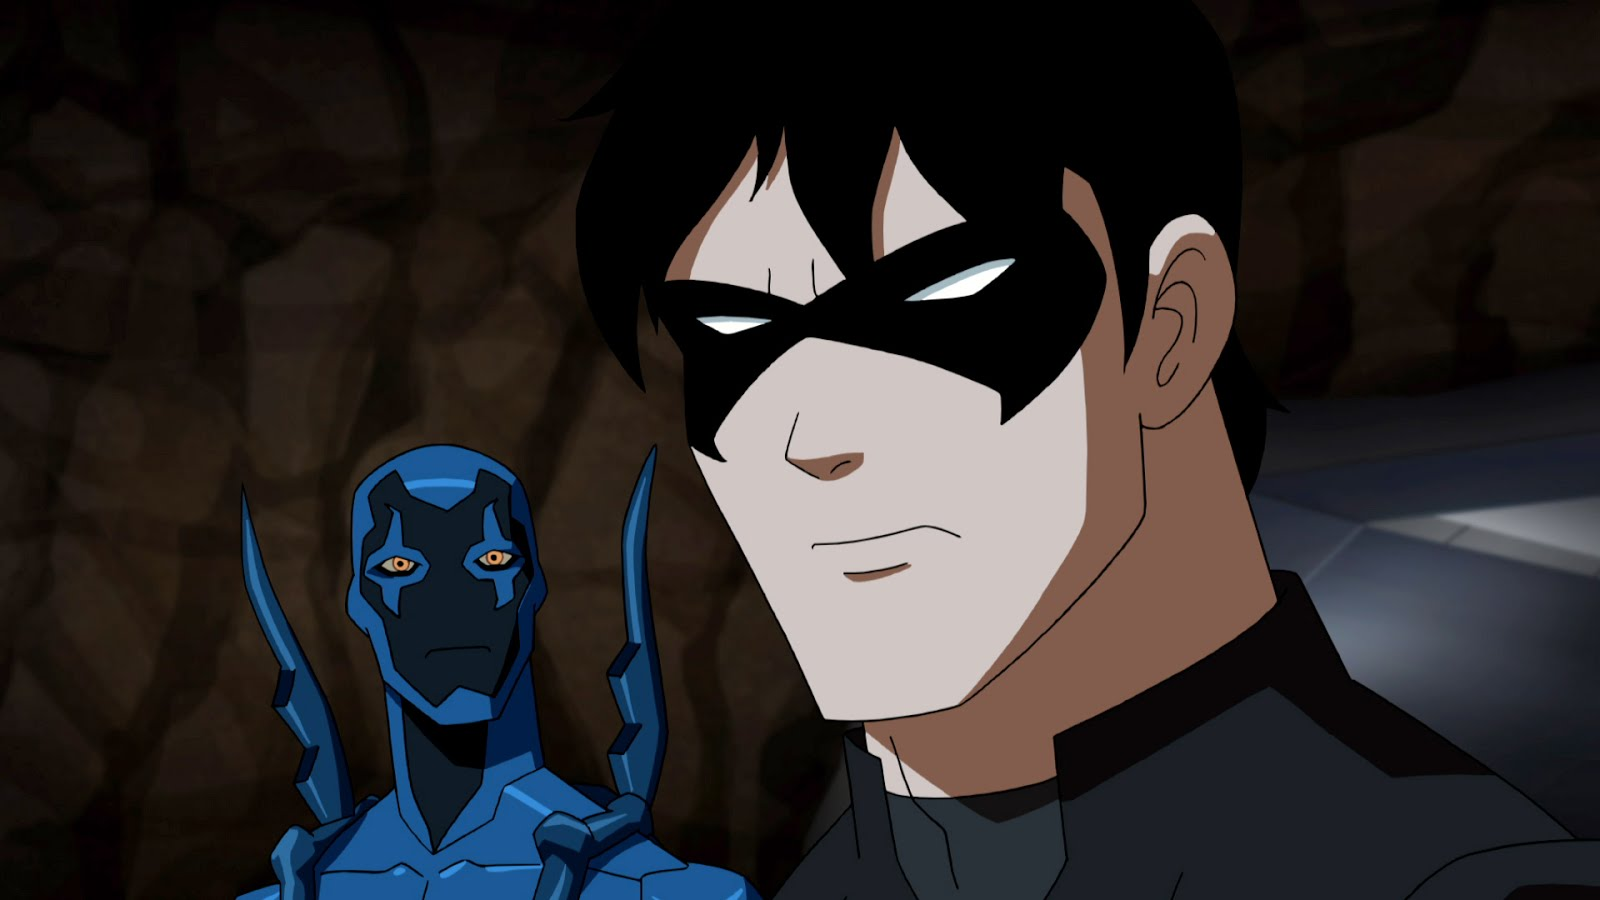 A k a dj afos a blog by jimmy j aquino 5 piece cartoon dinner 10 10 2012 dragons riders - Pictures of nightwing from young justice ...